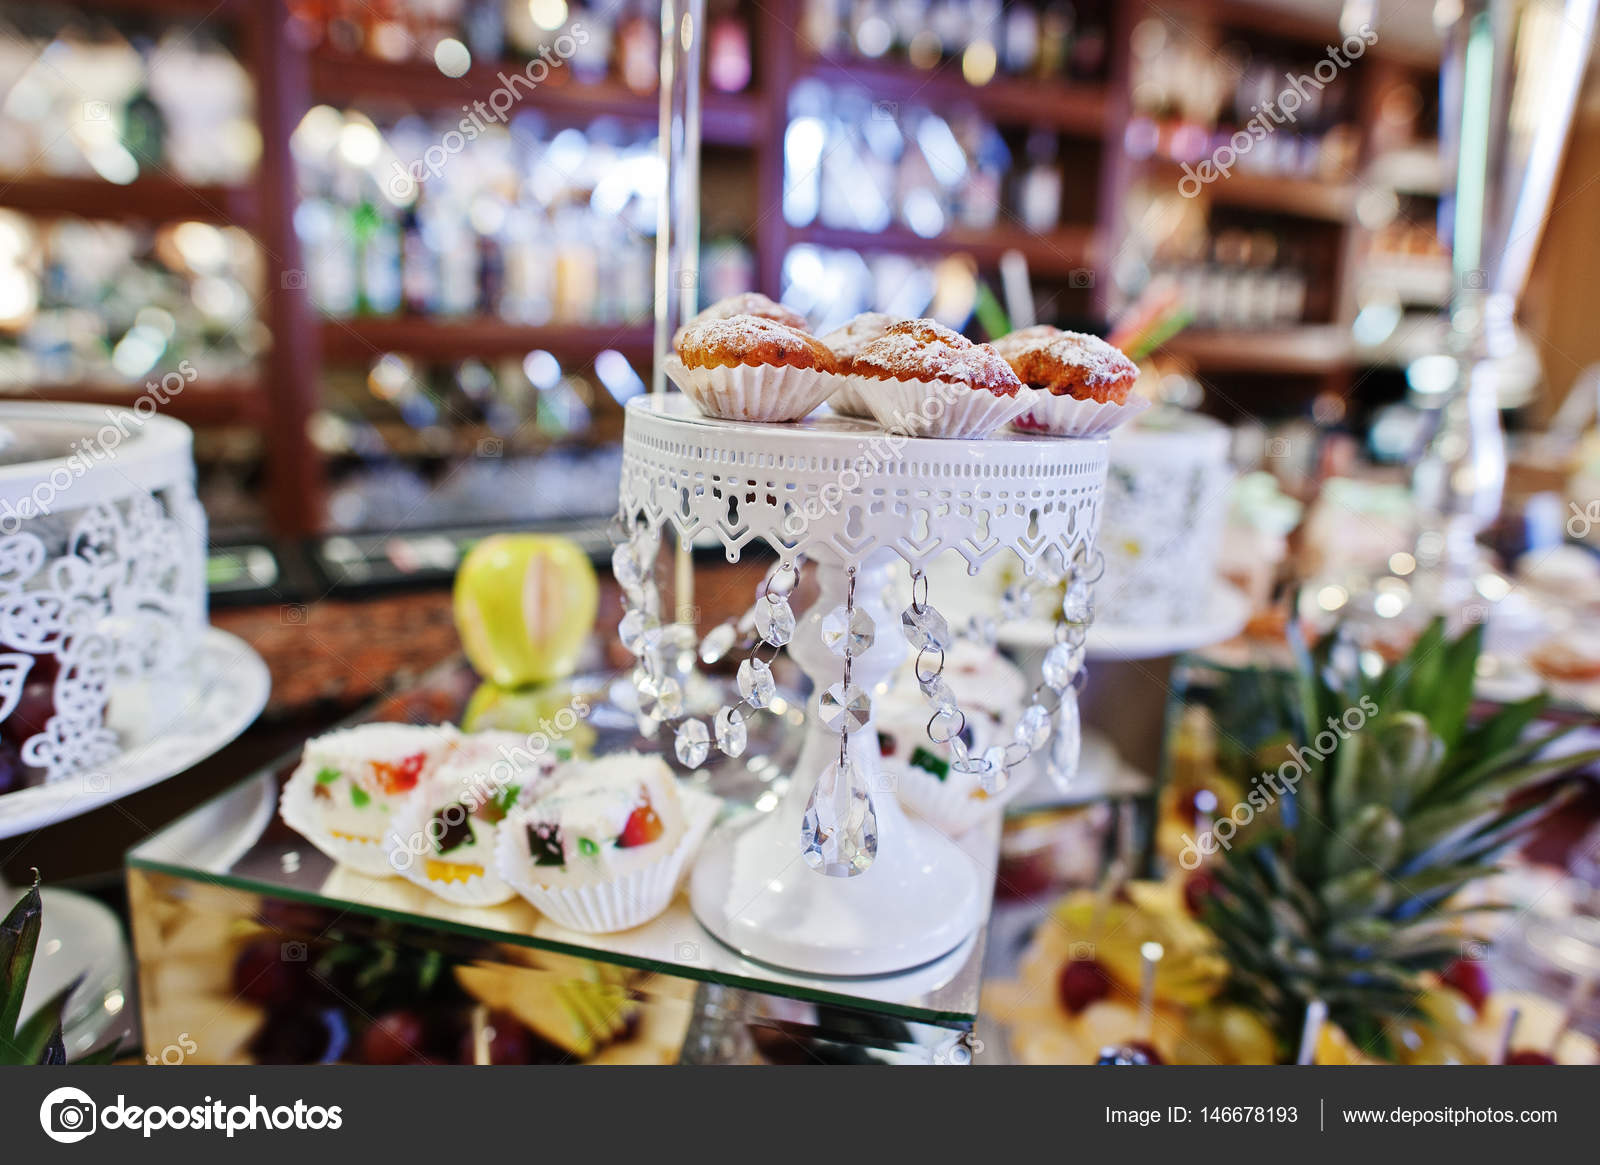 Wedding Reception Table With Different Fruits Cakes And Sweets